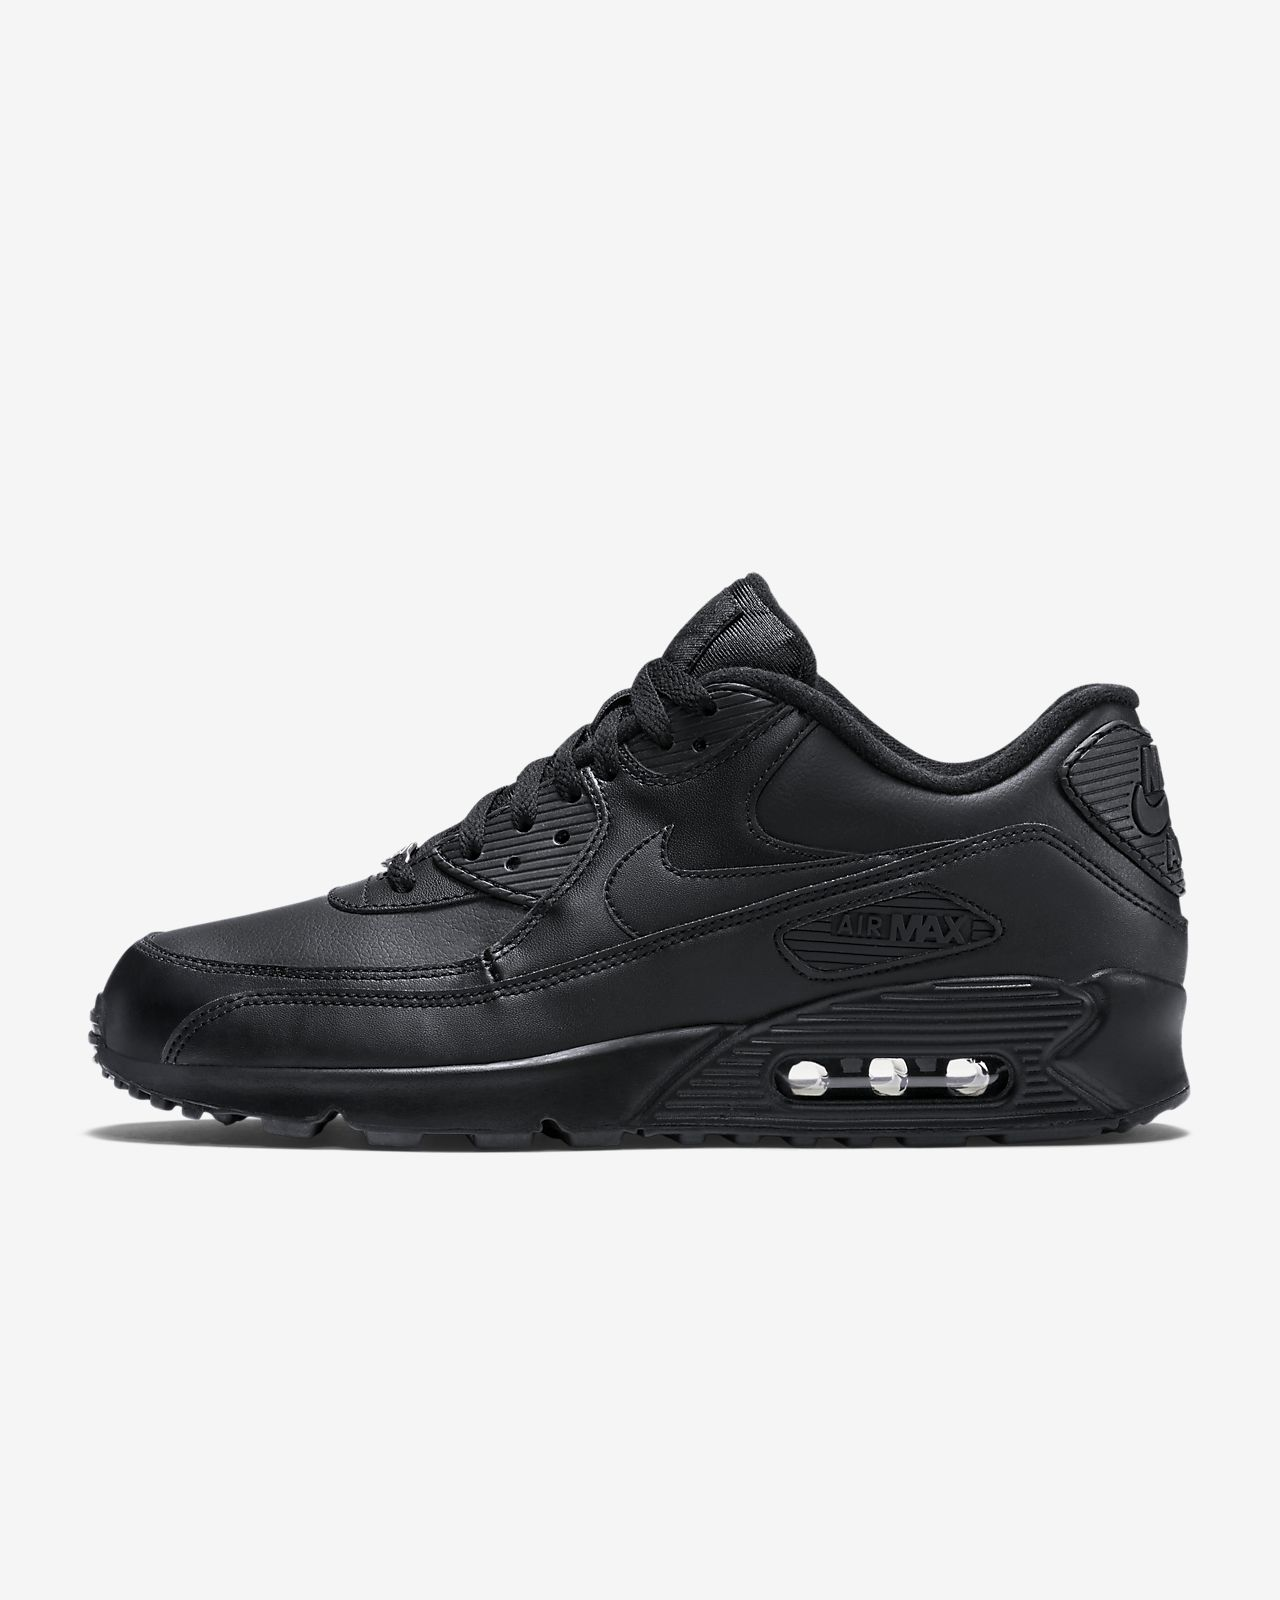 innovative design 06705 6f8f3 ... Buty męskie Nike Air Max 90 Leather